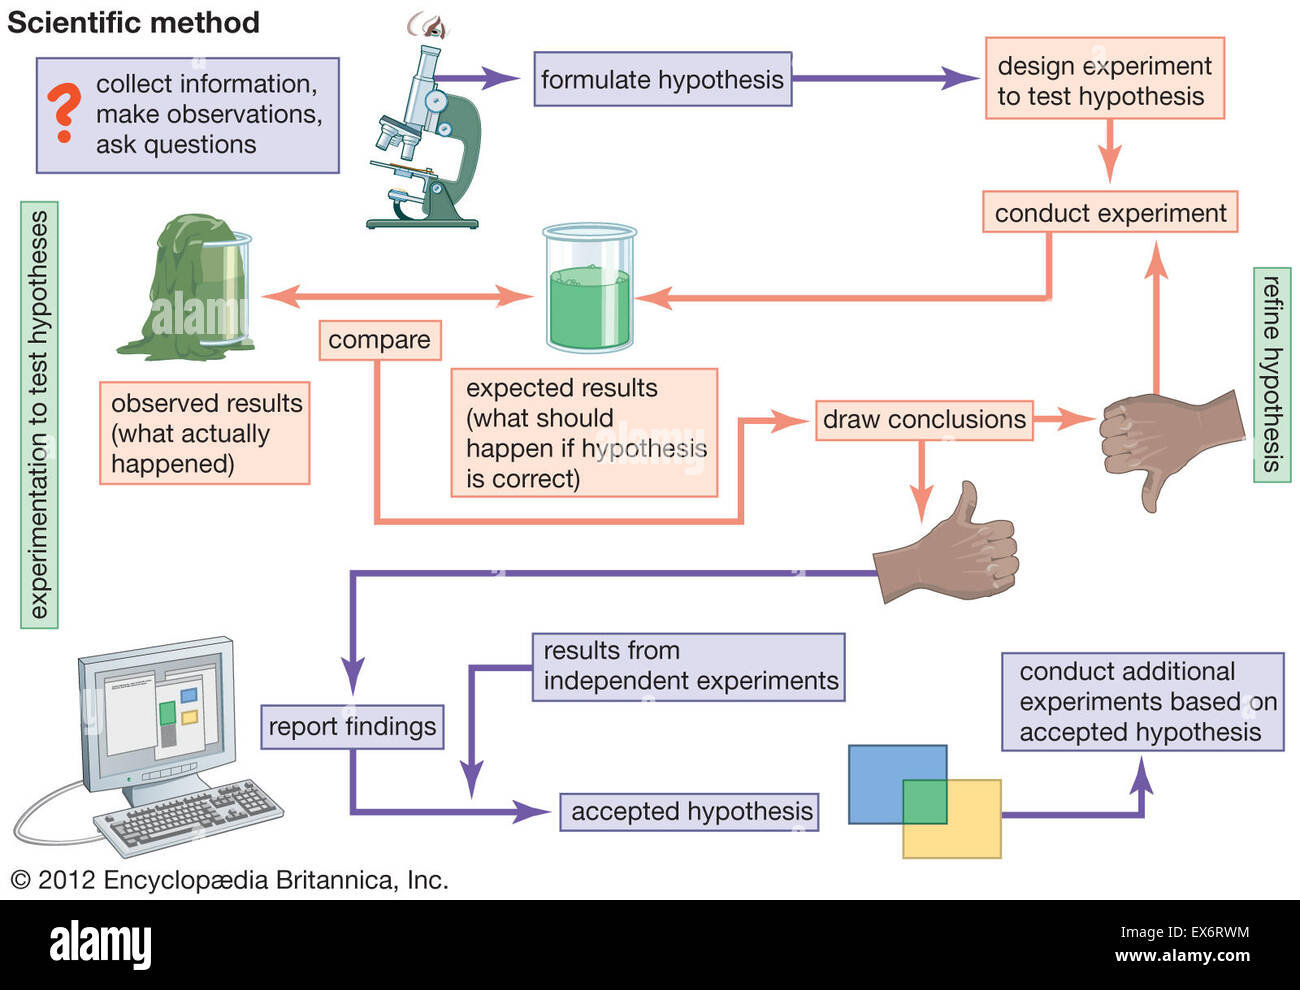 Flow Chart Of Scientific Method Stock Photo